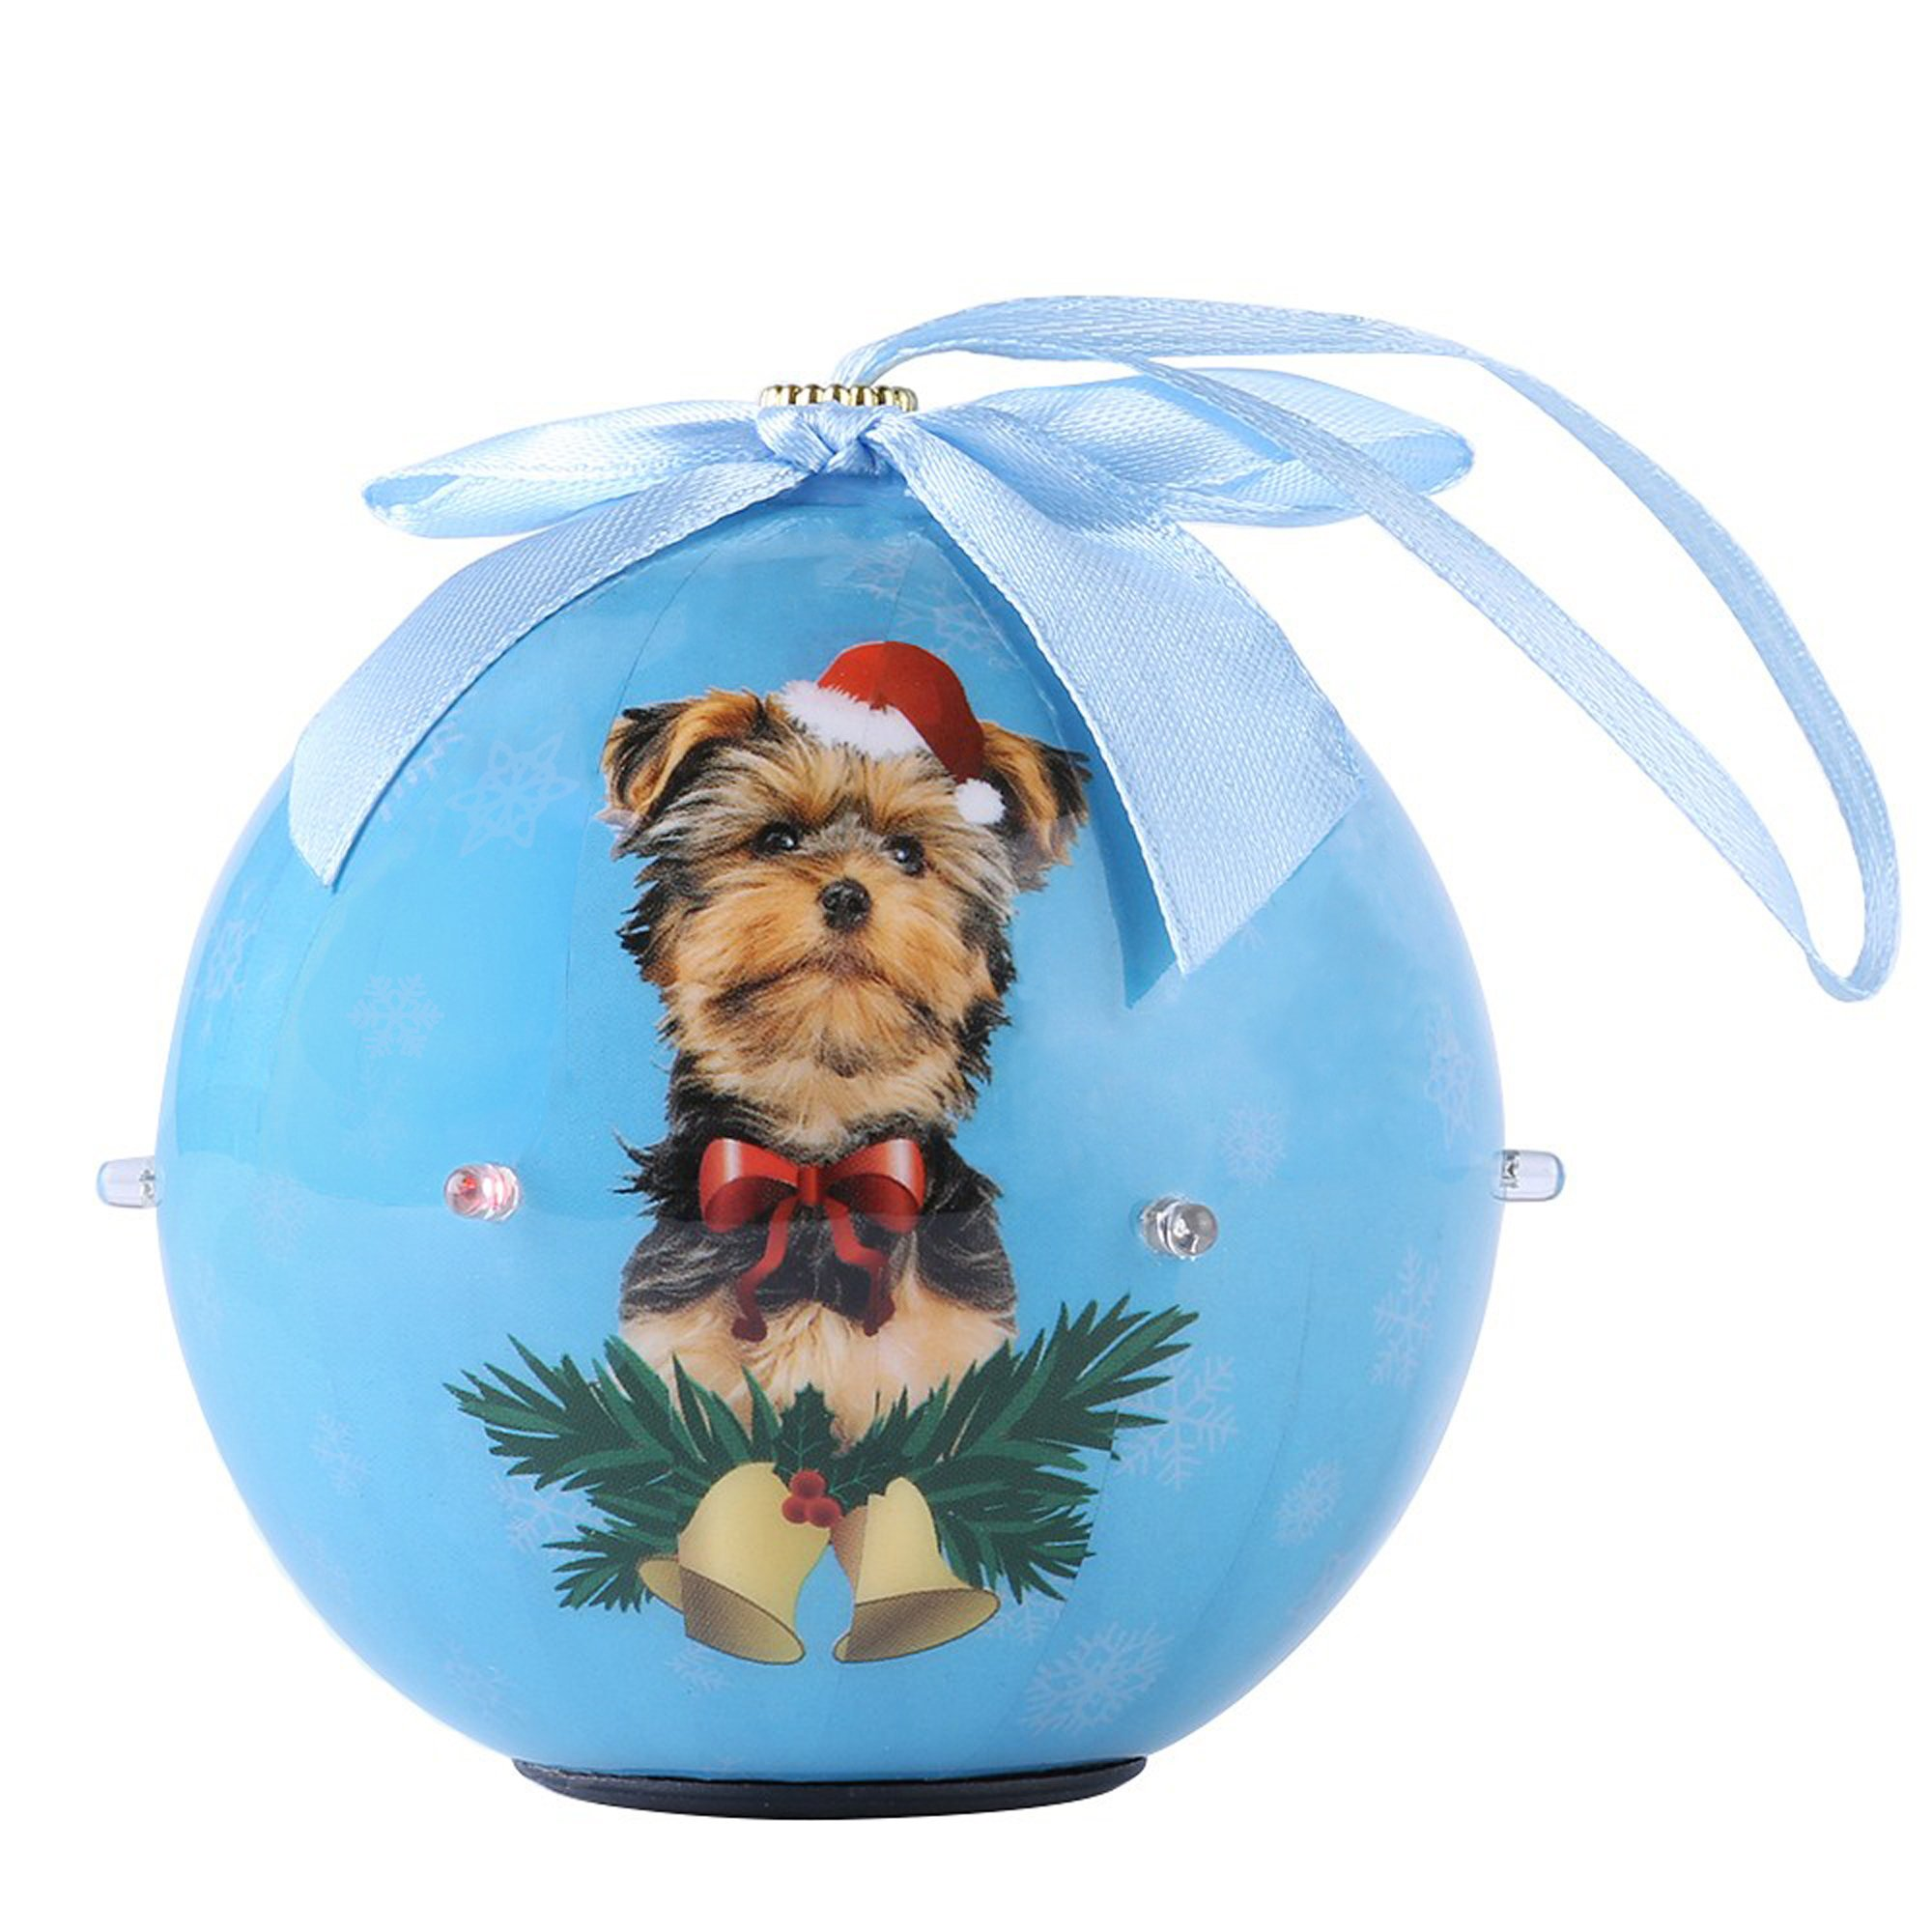 Cuecuepet Yorkie Dog Collection Twinkling Lights Christmas Ball